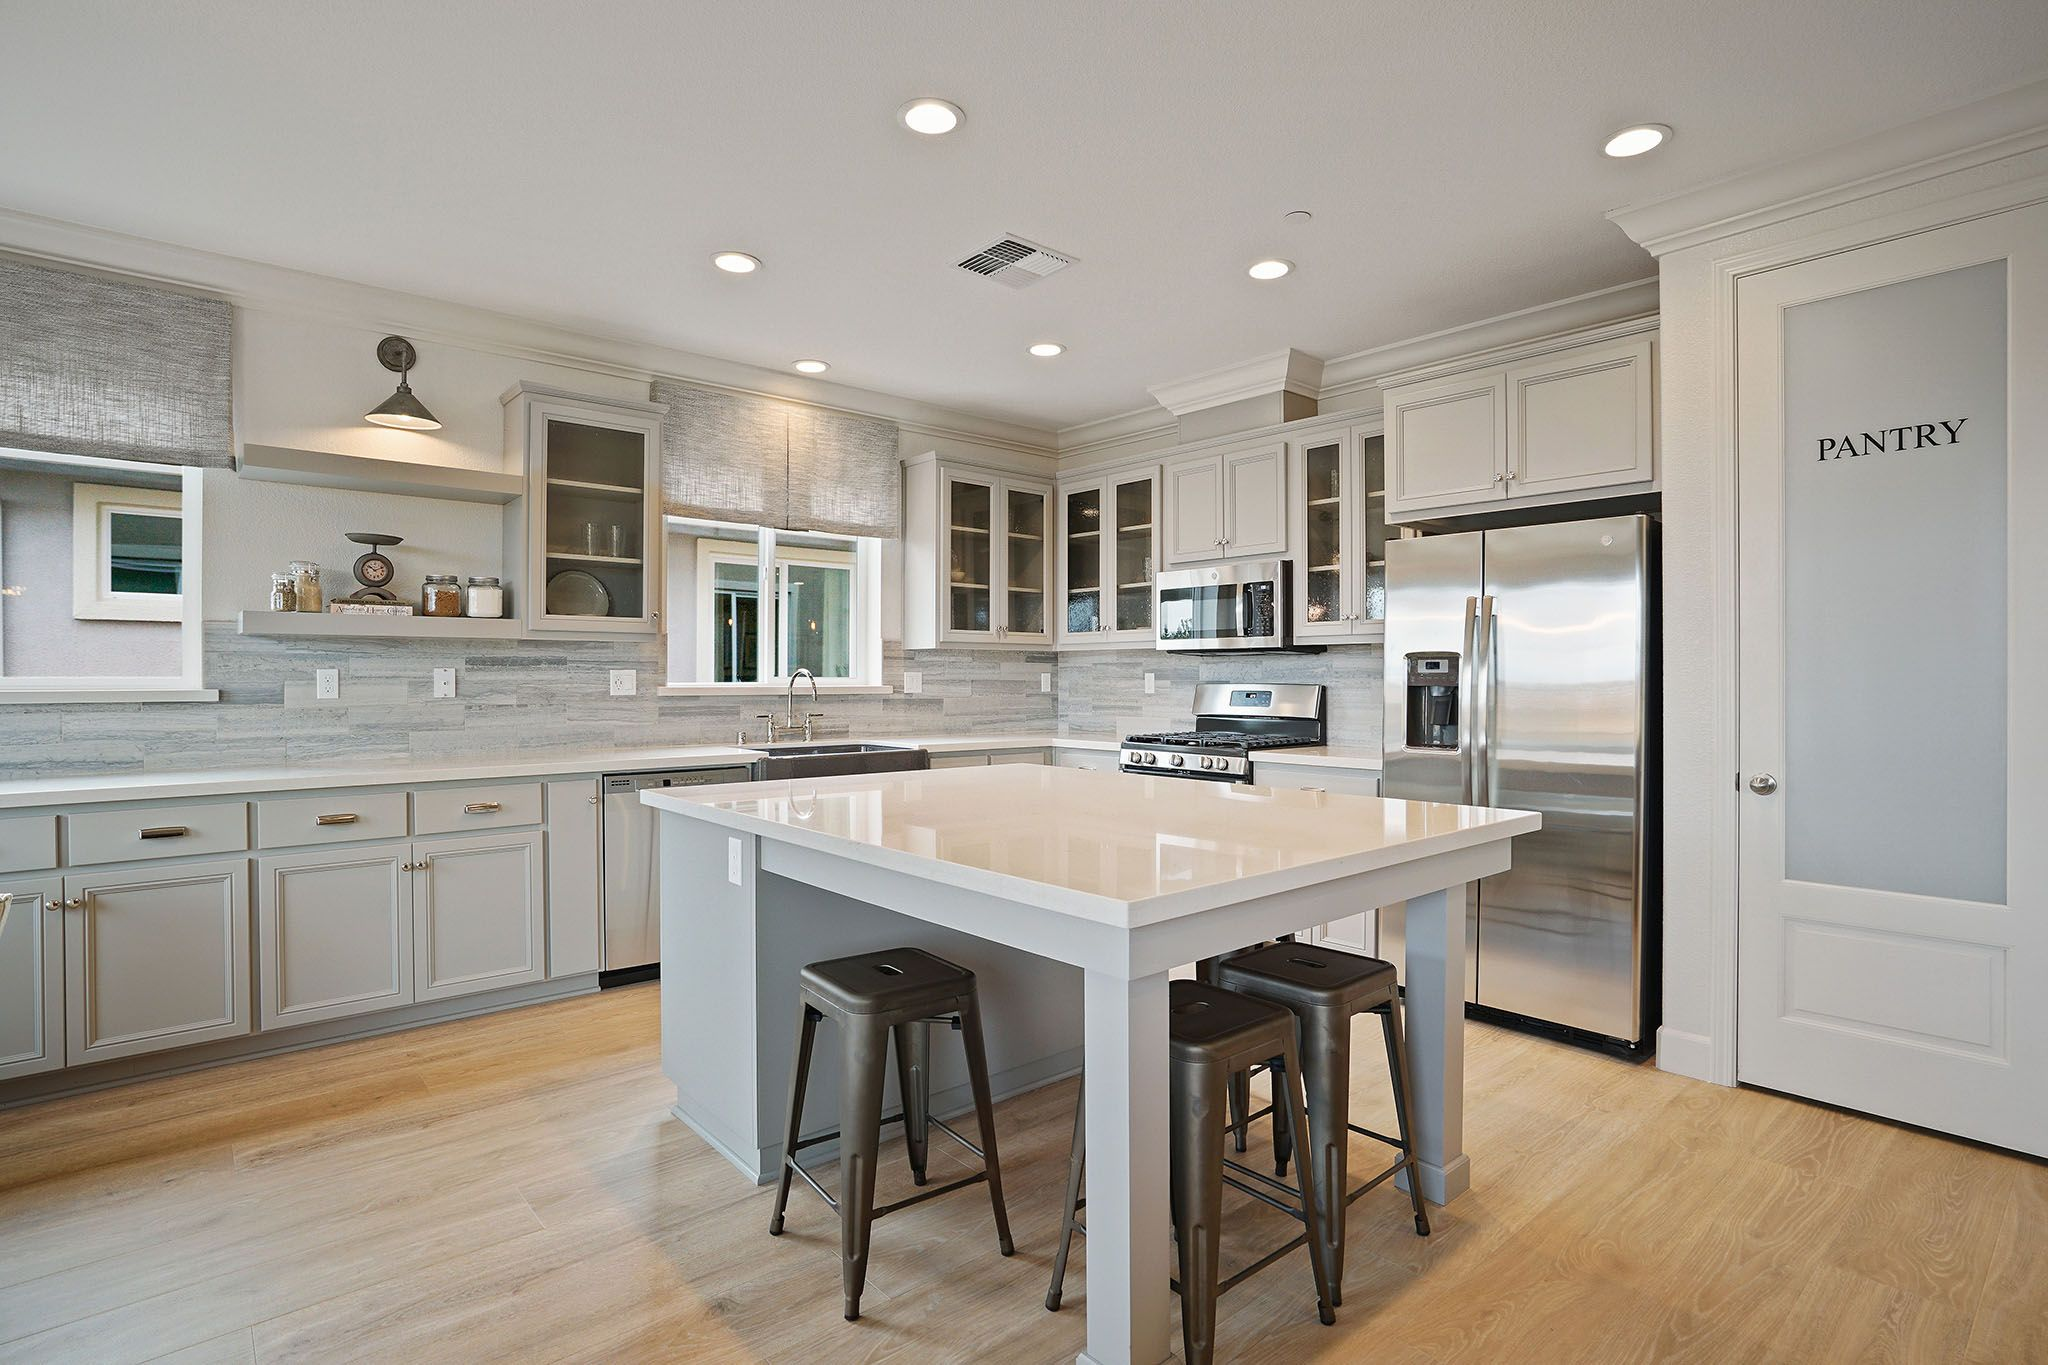 Kitchen featured in the Parker By Discovery Homes in Chico, CA